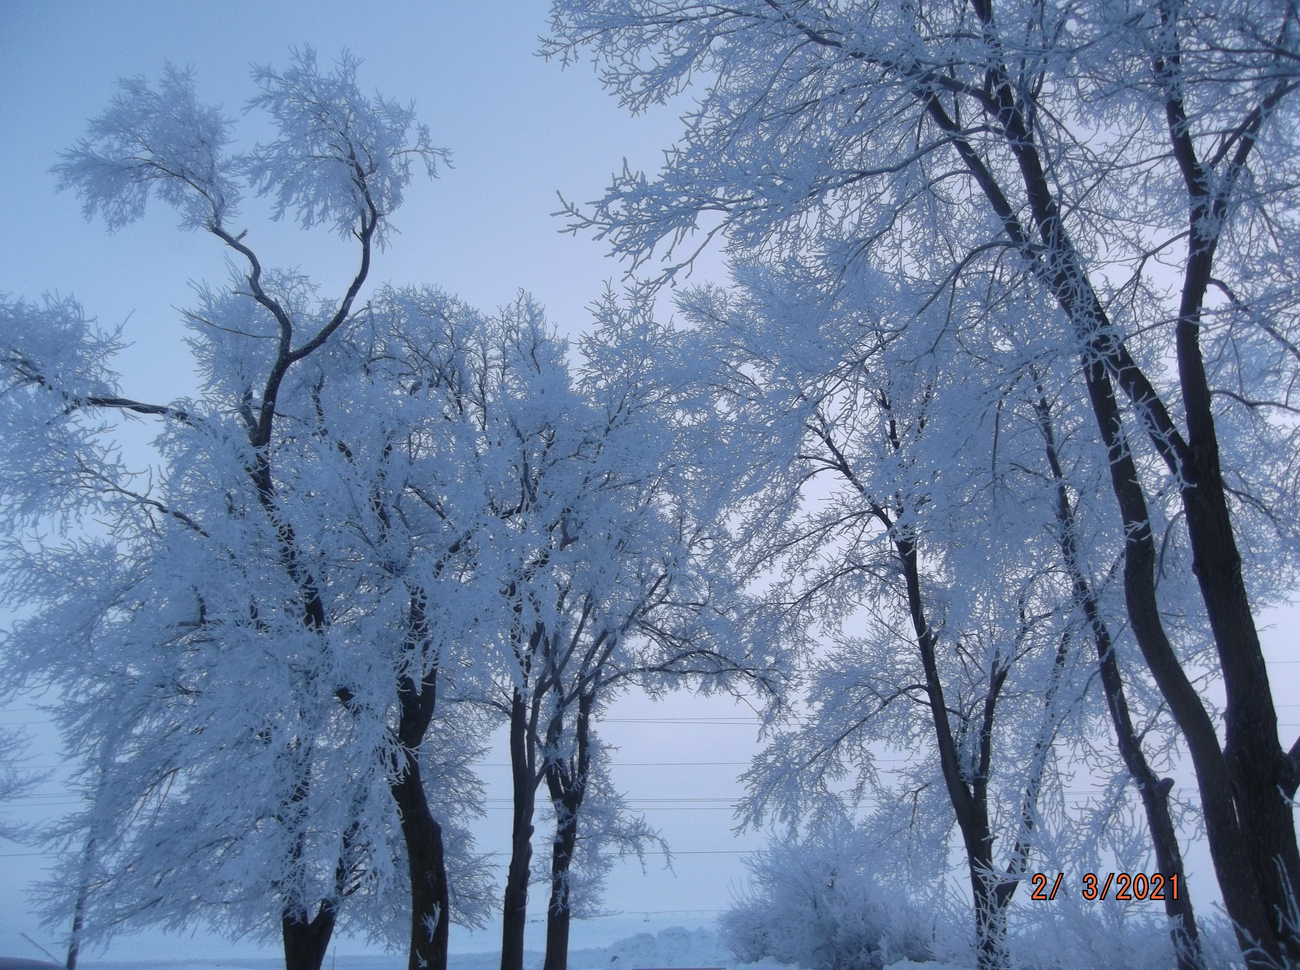 Hoarfrost in the trees